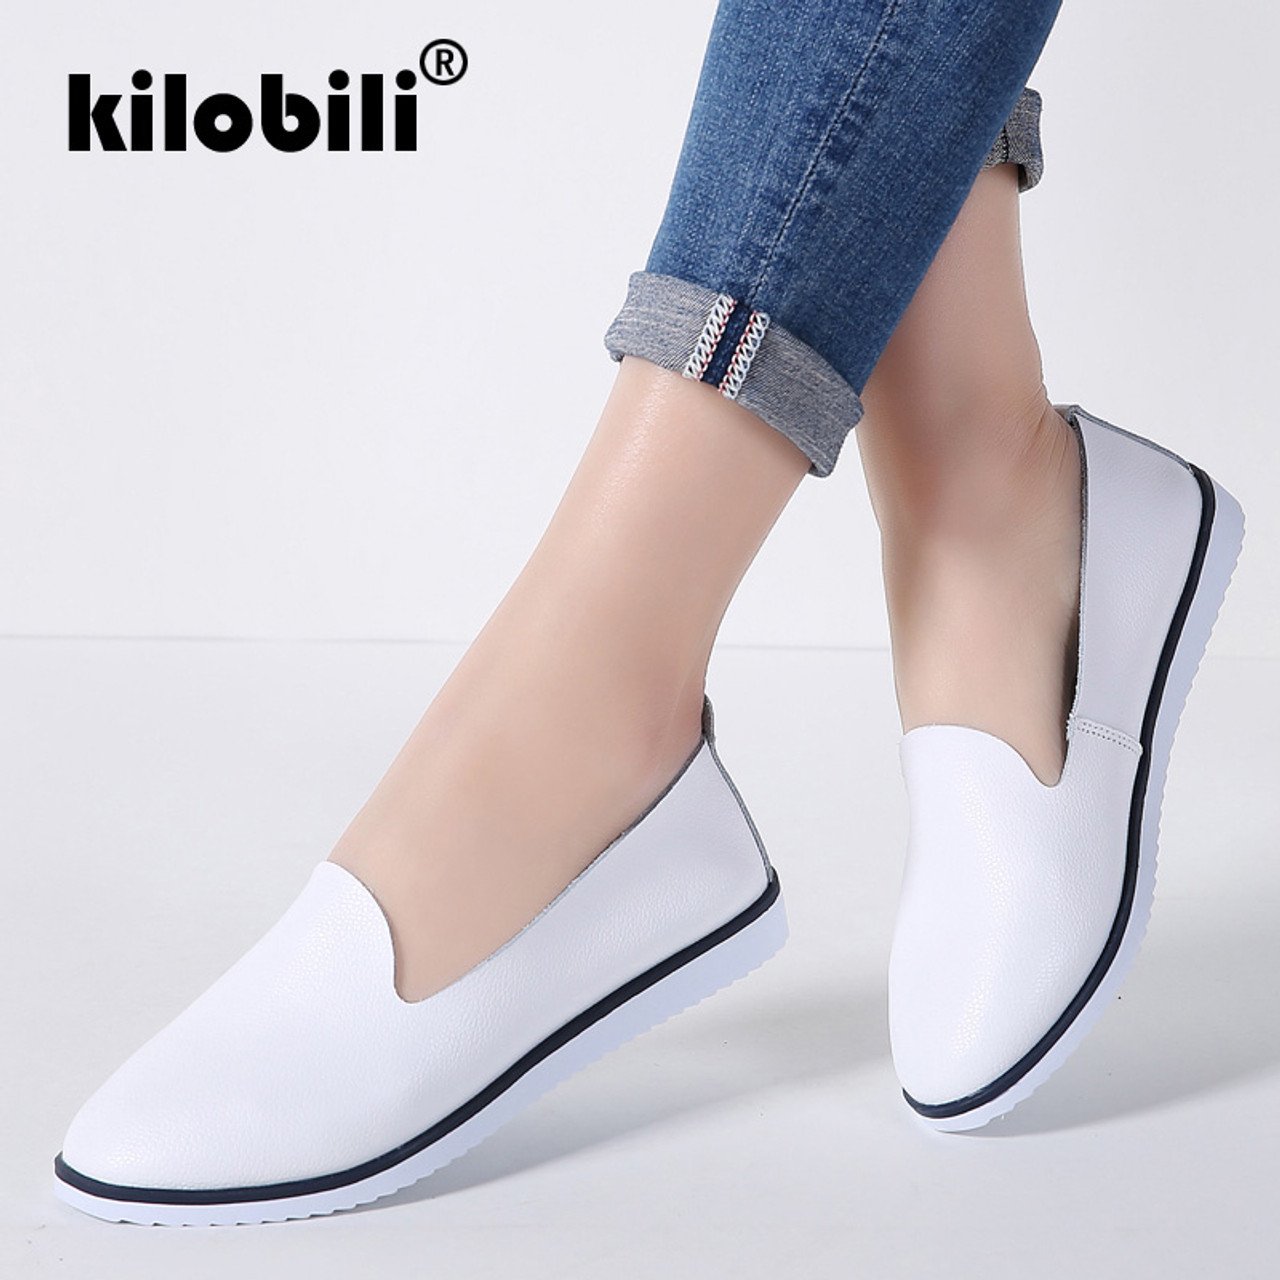 b02aeaaa8a2 kilobili 2018 Spring Women Flats Shoes Slip On Flat Loafers Leather Shoes  Ladies Ballet Flats Boat ...